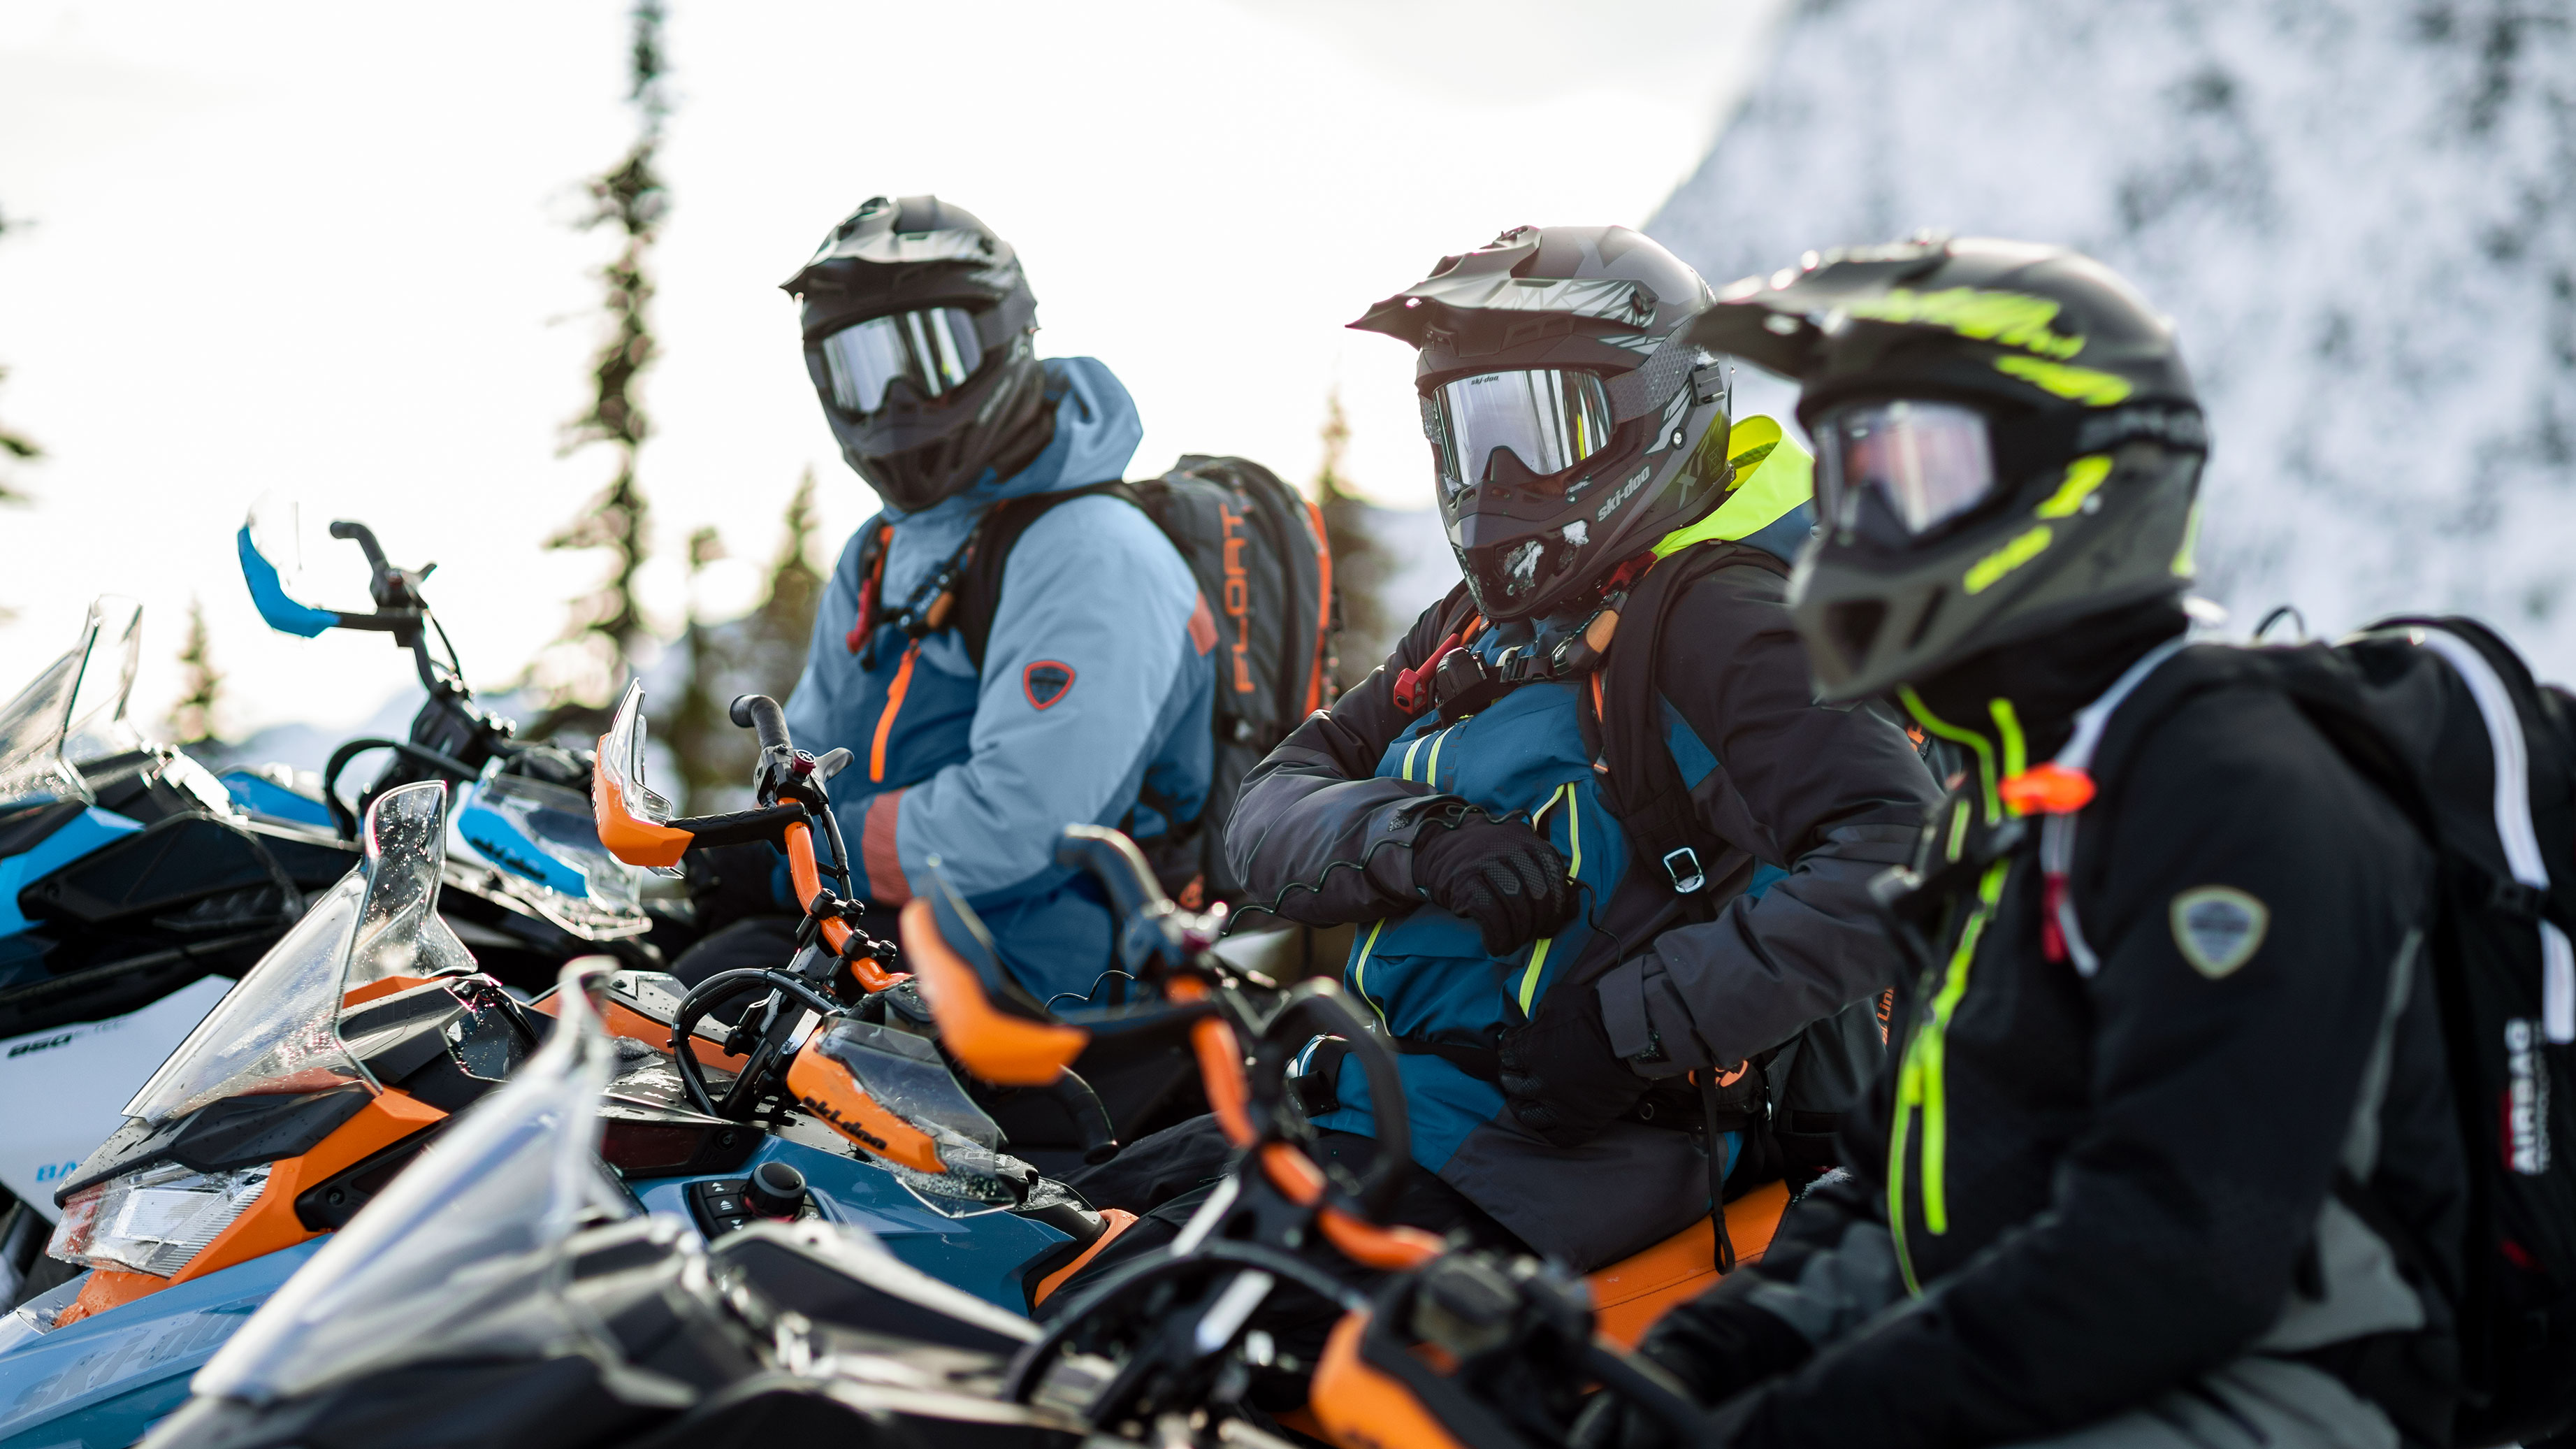 Group of riders with their 2022 Ski-Doo Backcountry